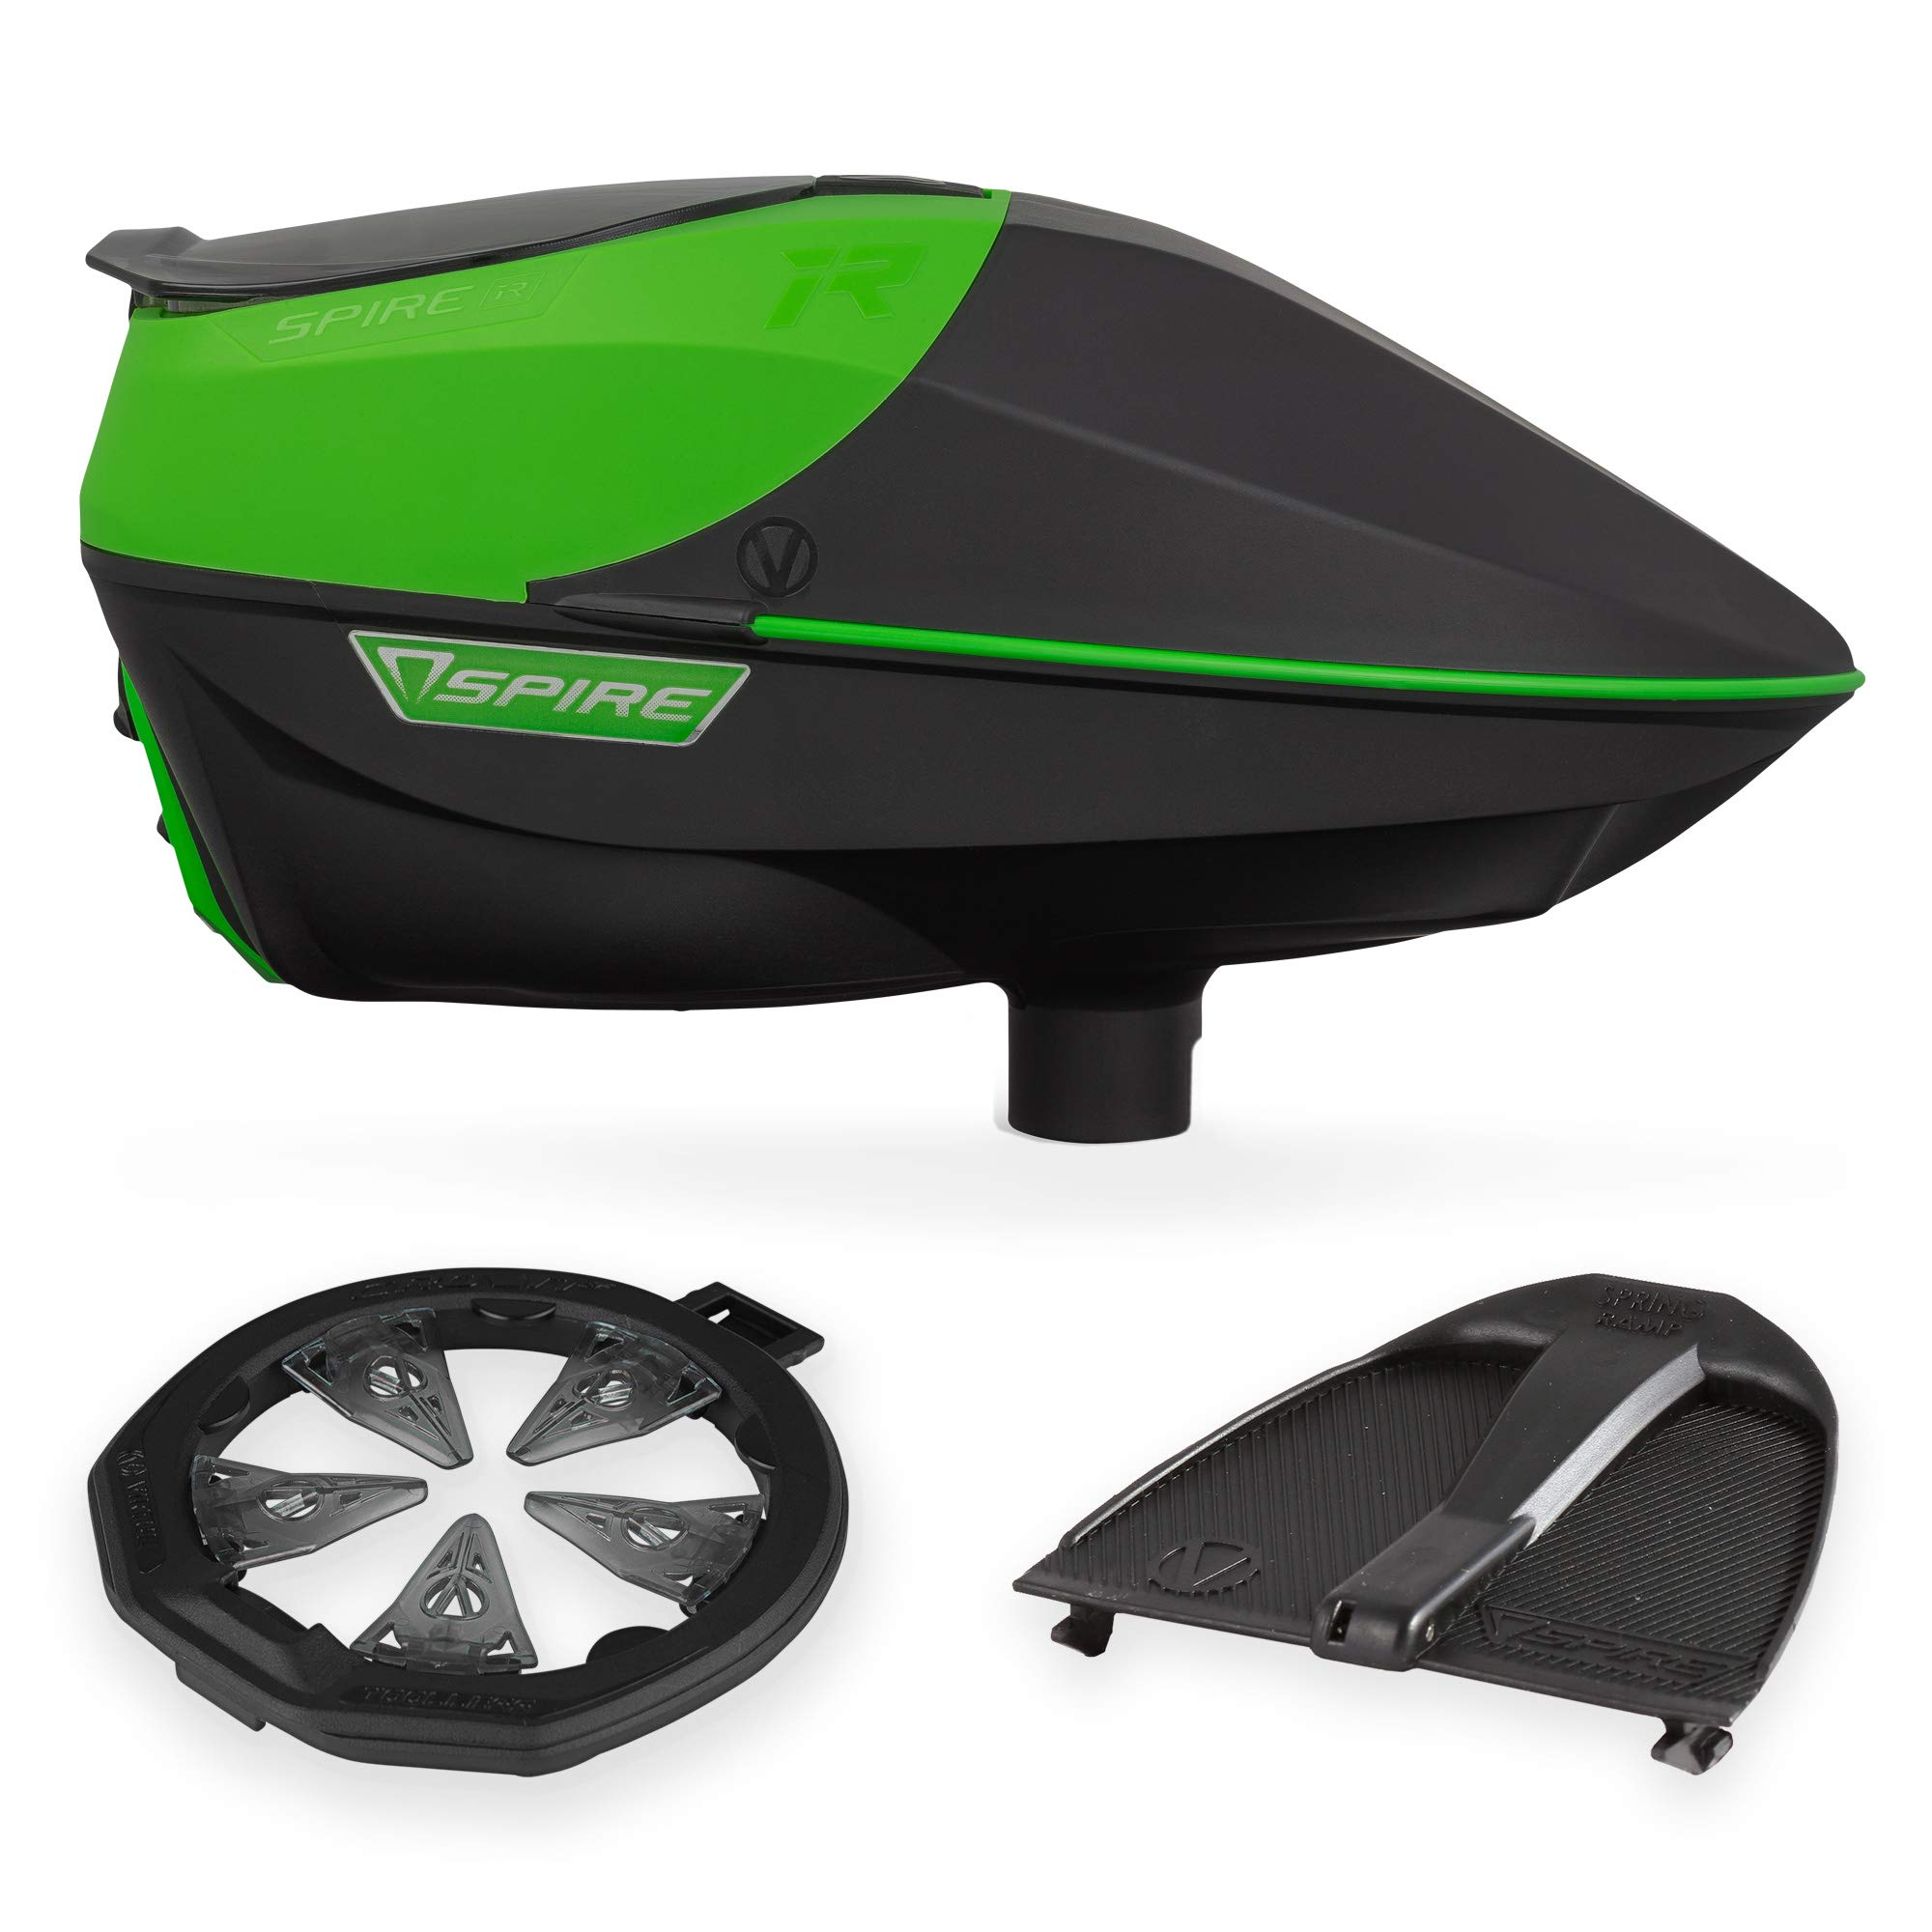 Virtue Spire IR Electronic Paintball Loader, CrownSF II Speedfeed, and Spring Ramp Bundle - Lime by Virtue Paintball